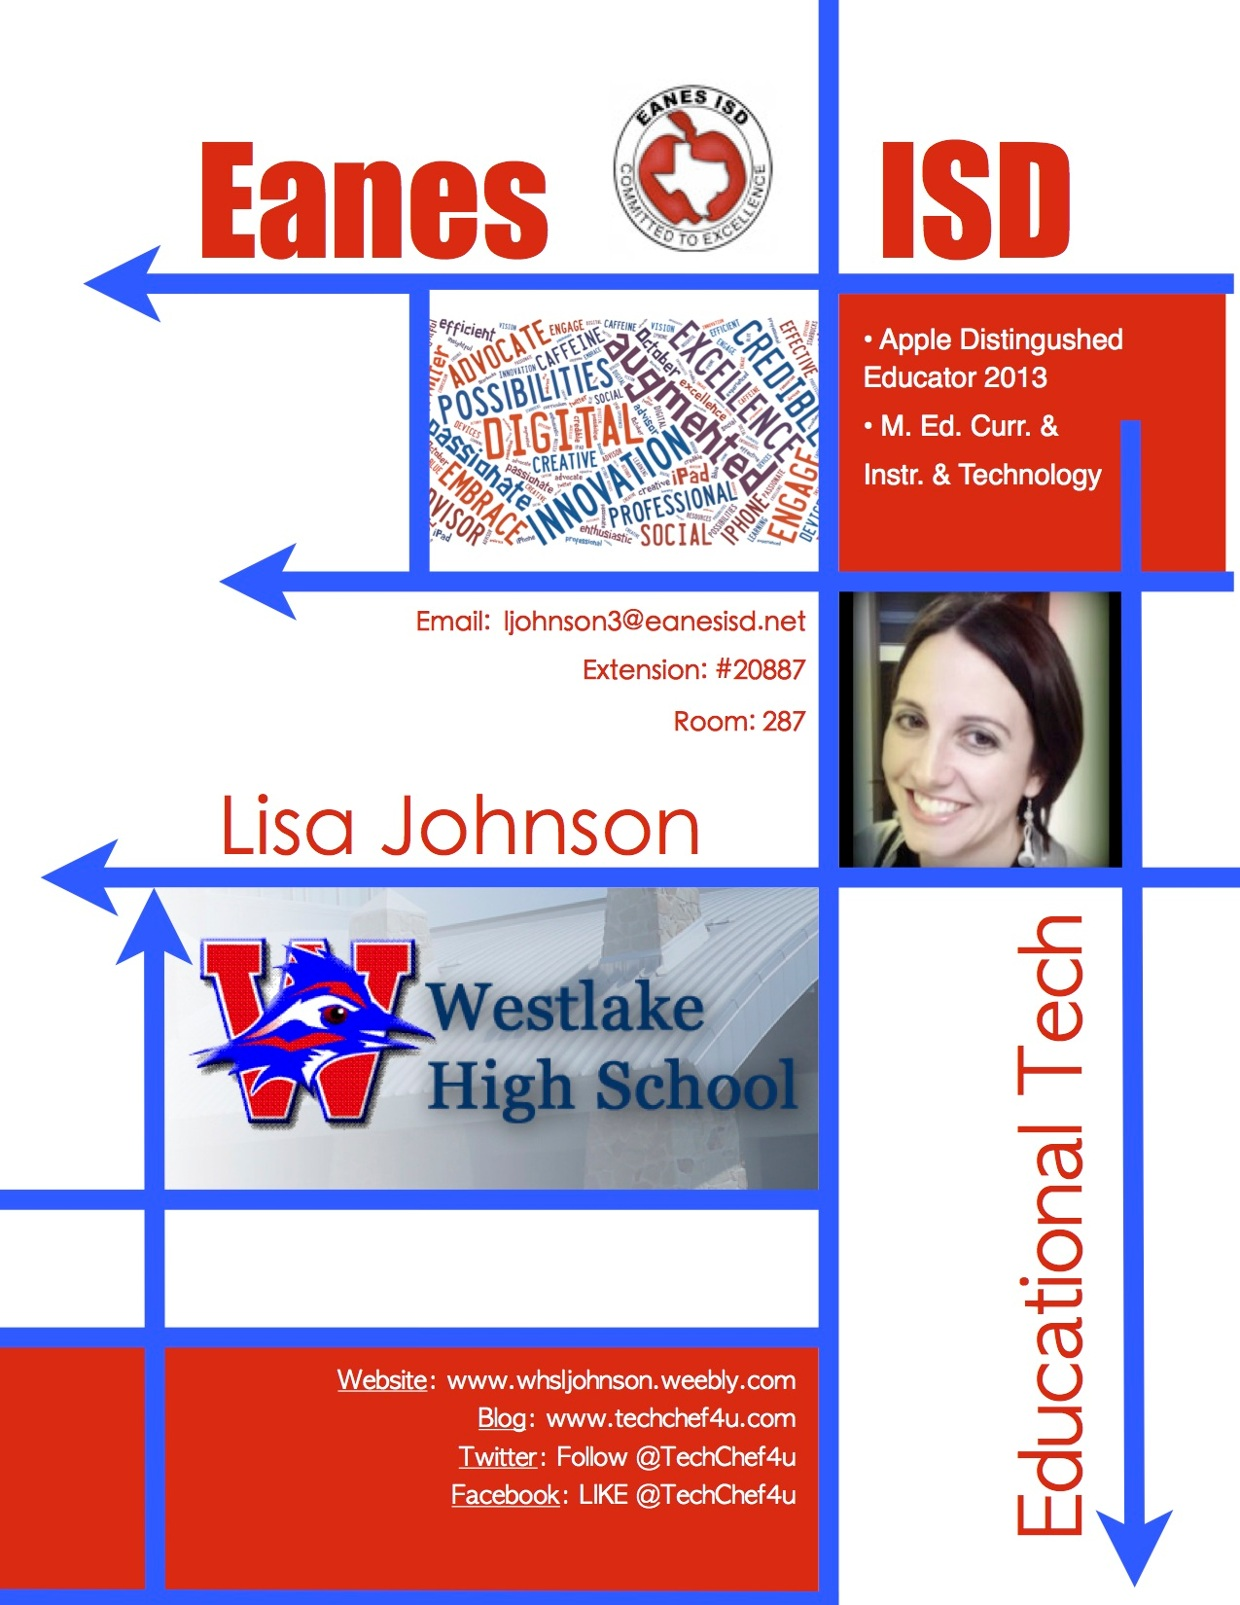 Lisa Johnson: Ed Tech